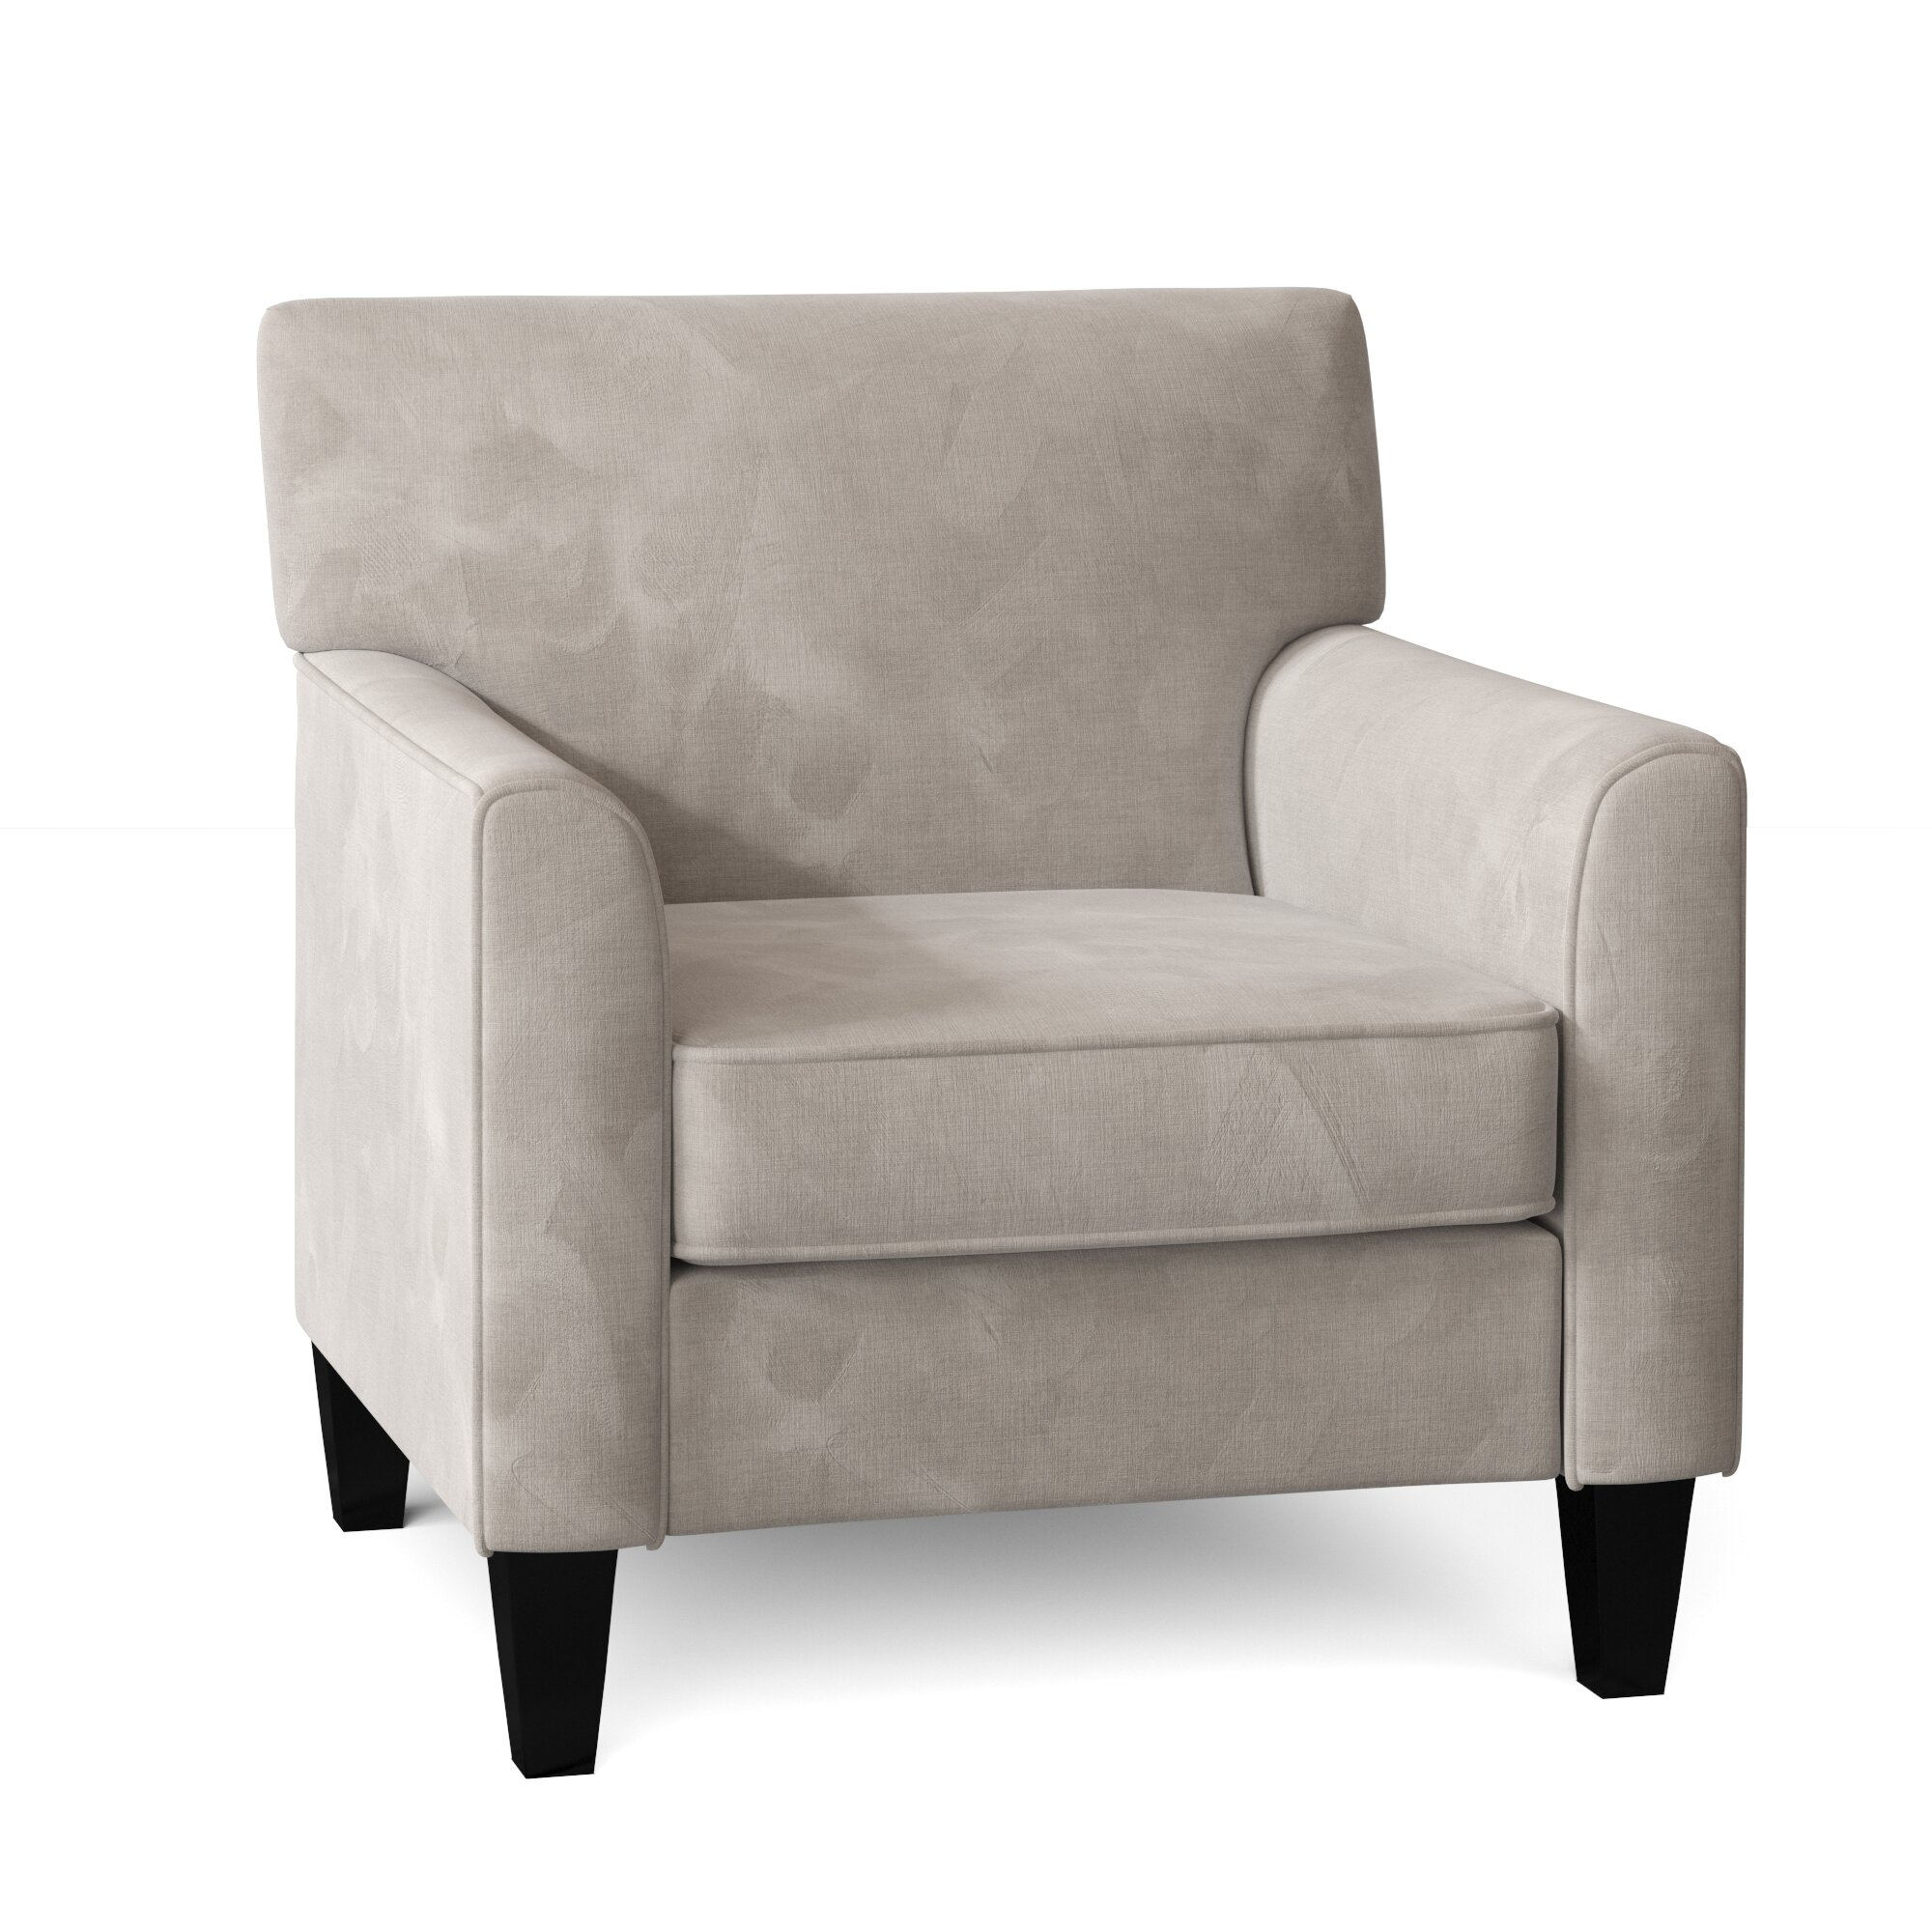 Sara Armchair Pertaining To Hofstetter Armchairs (View 10 of 15)